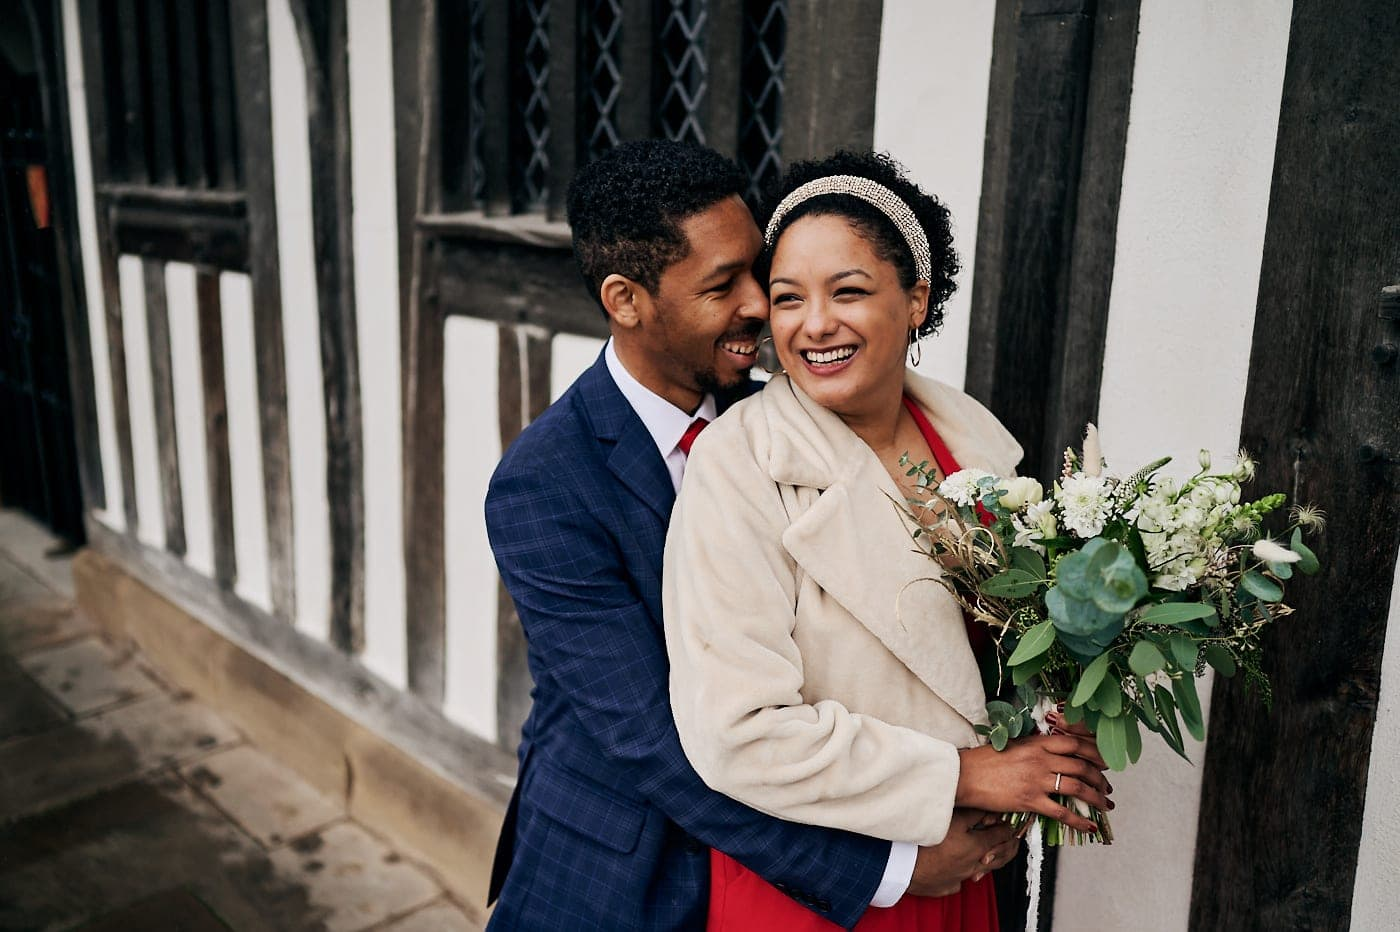 Newly married couple small wedding in Stratford-upon-Avon